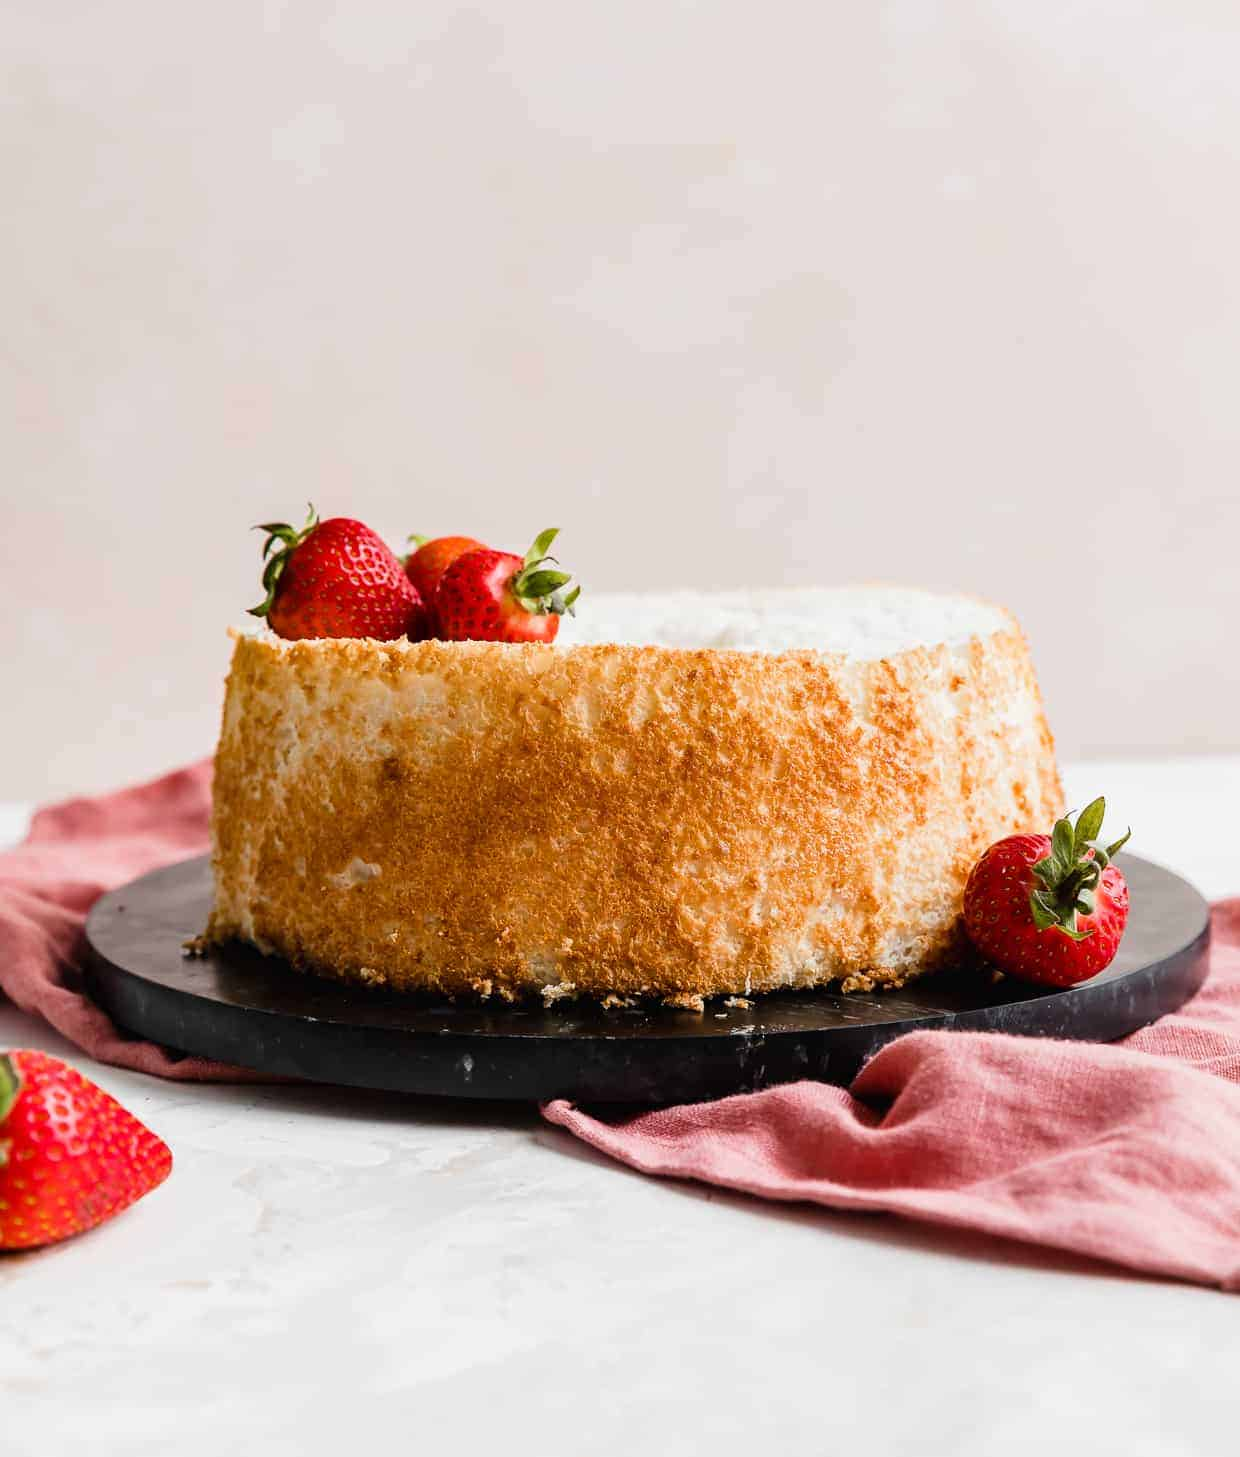 An angel food cake on a black round platter.